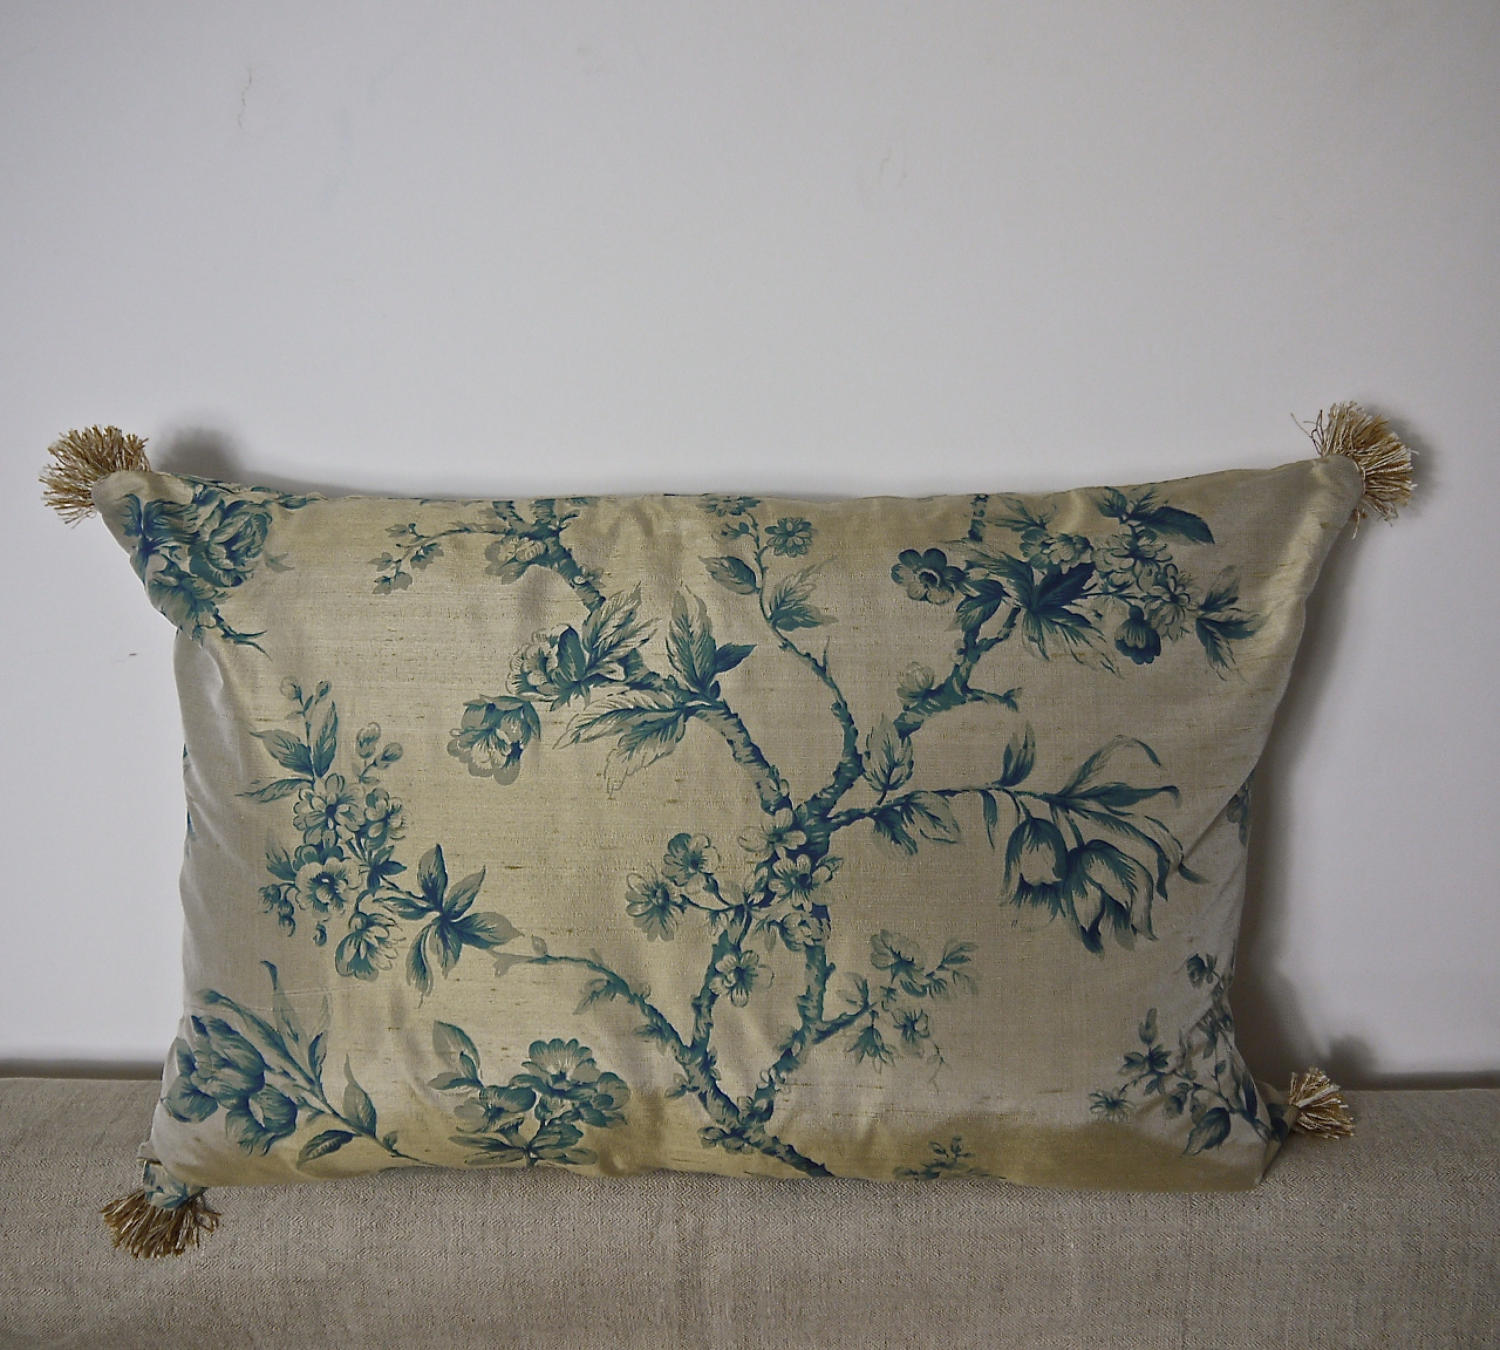 Mid-20th century blue floral on bronze silk cushion